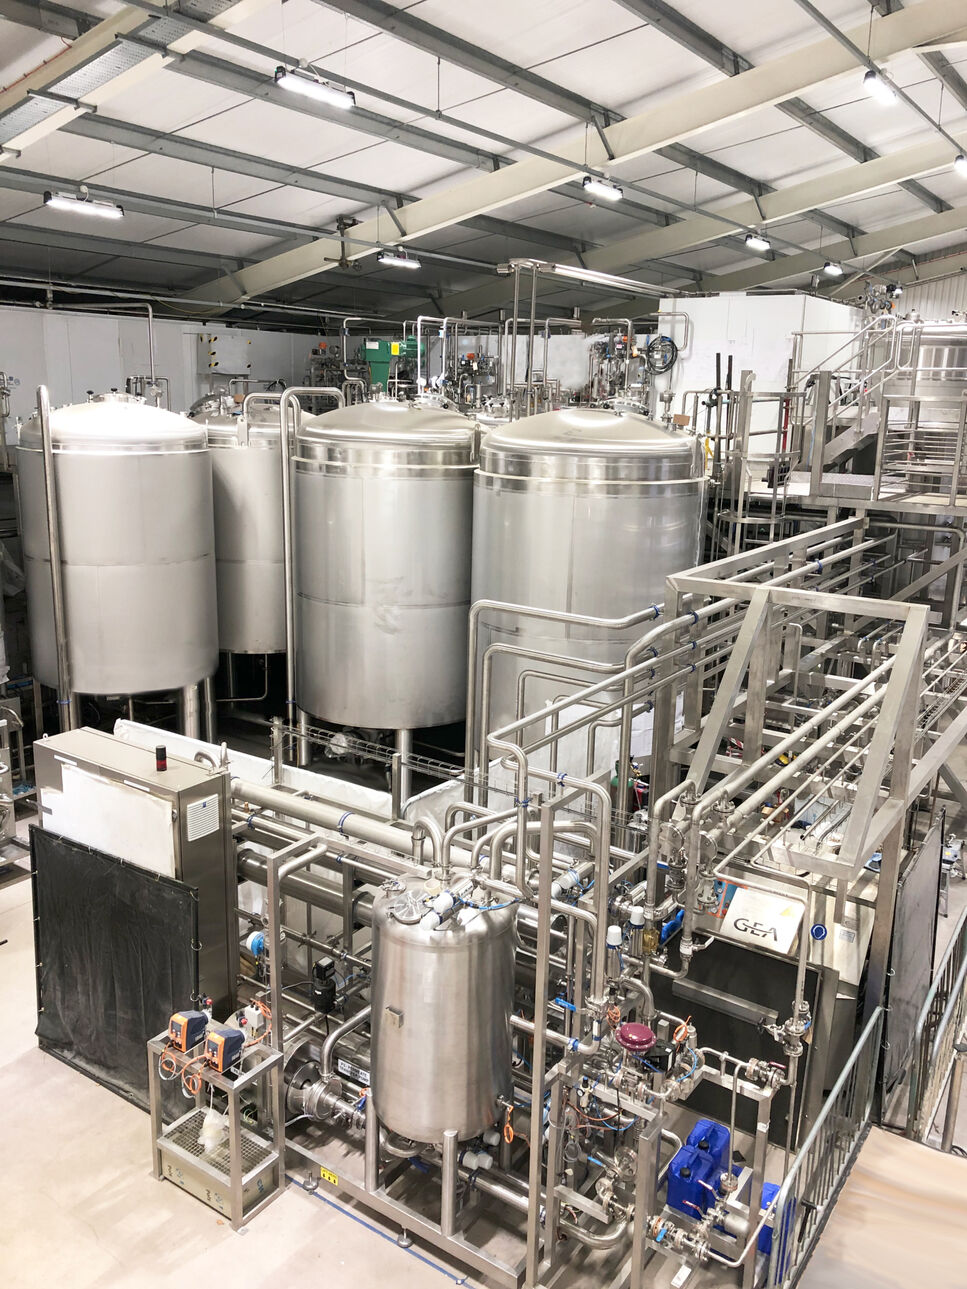 The new Biocatalysts production facility in Cardiff